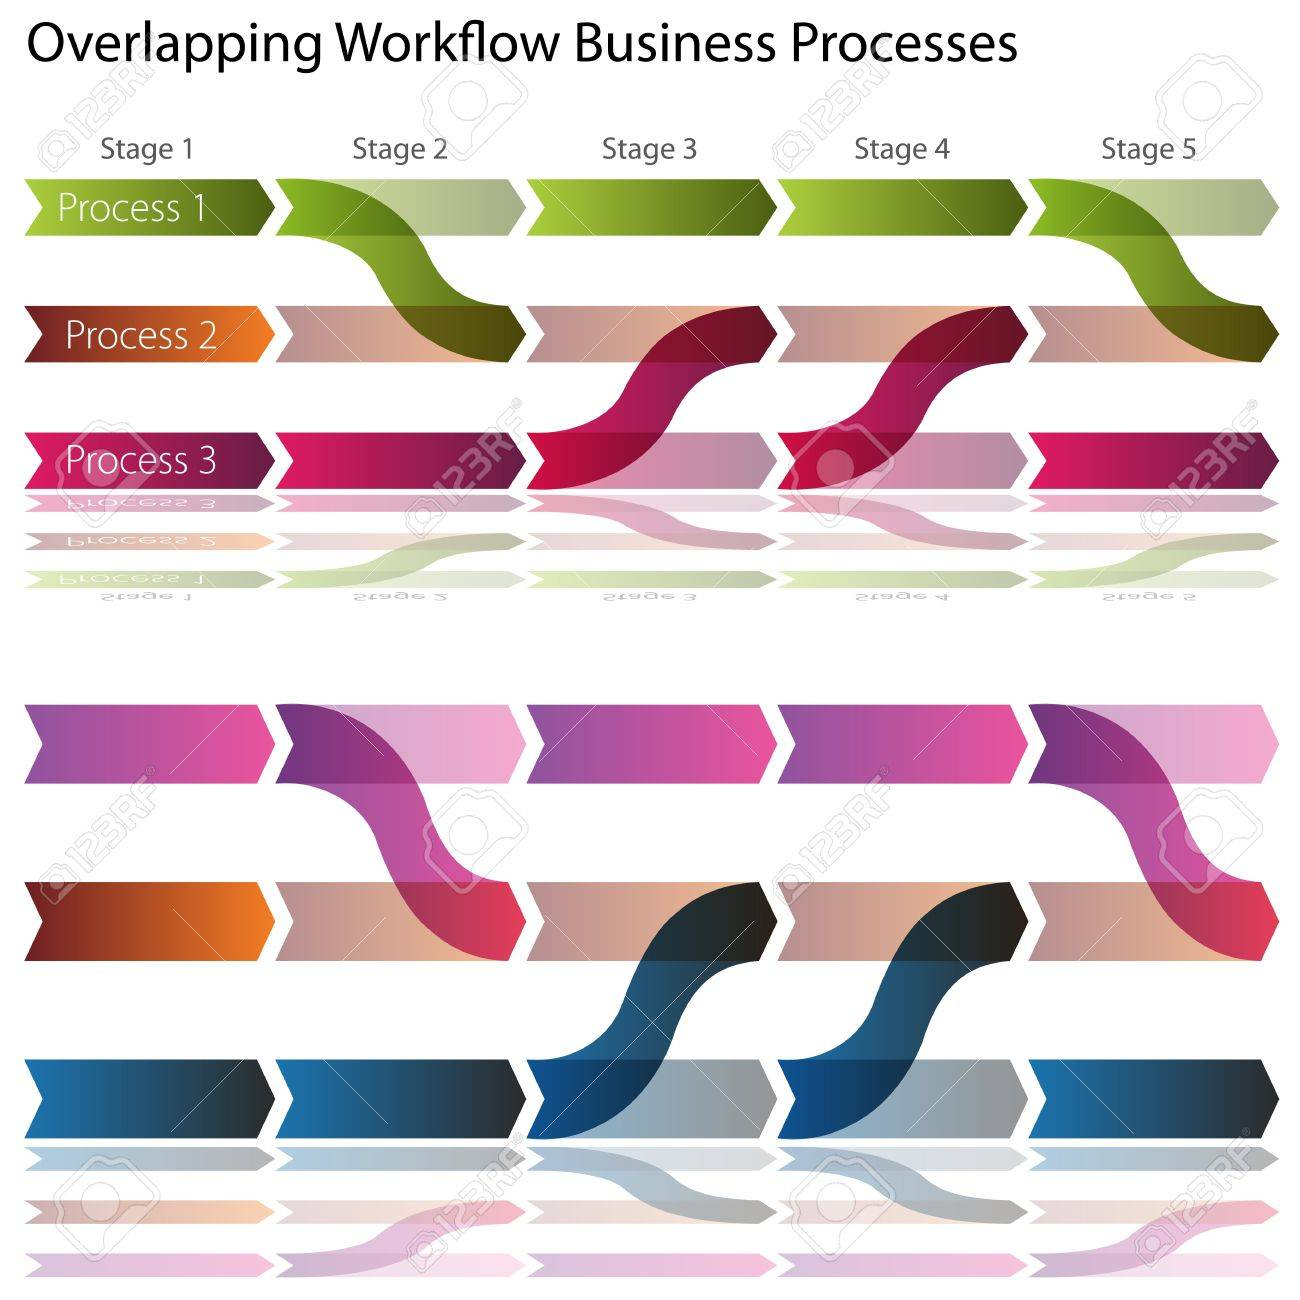 An image of a overlapping workflow business processes charts. - 12336911